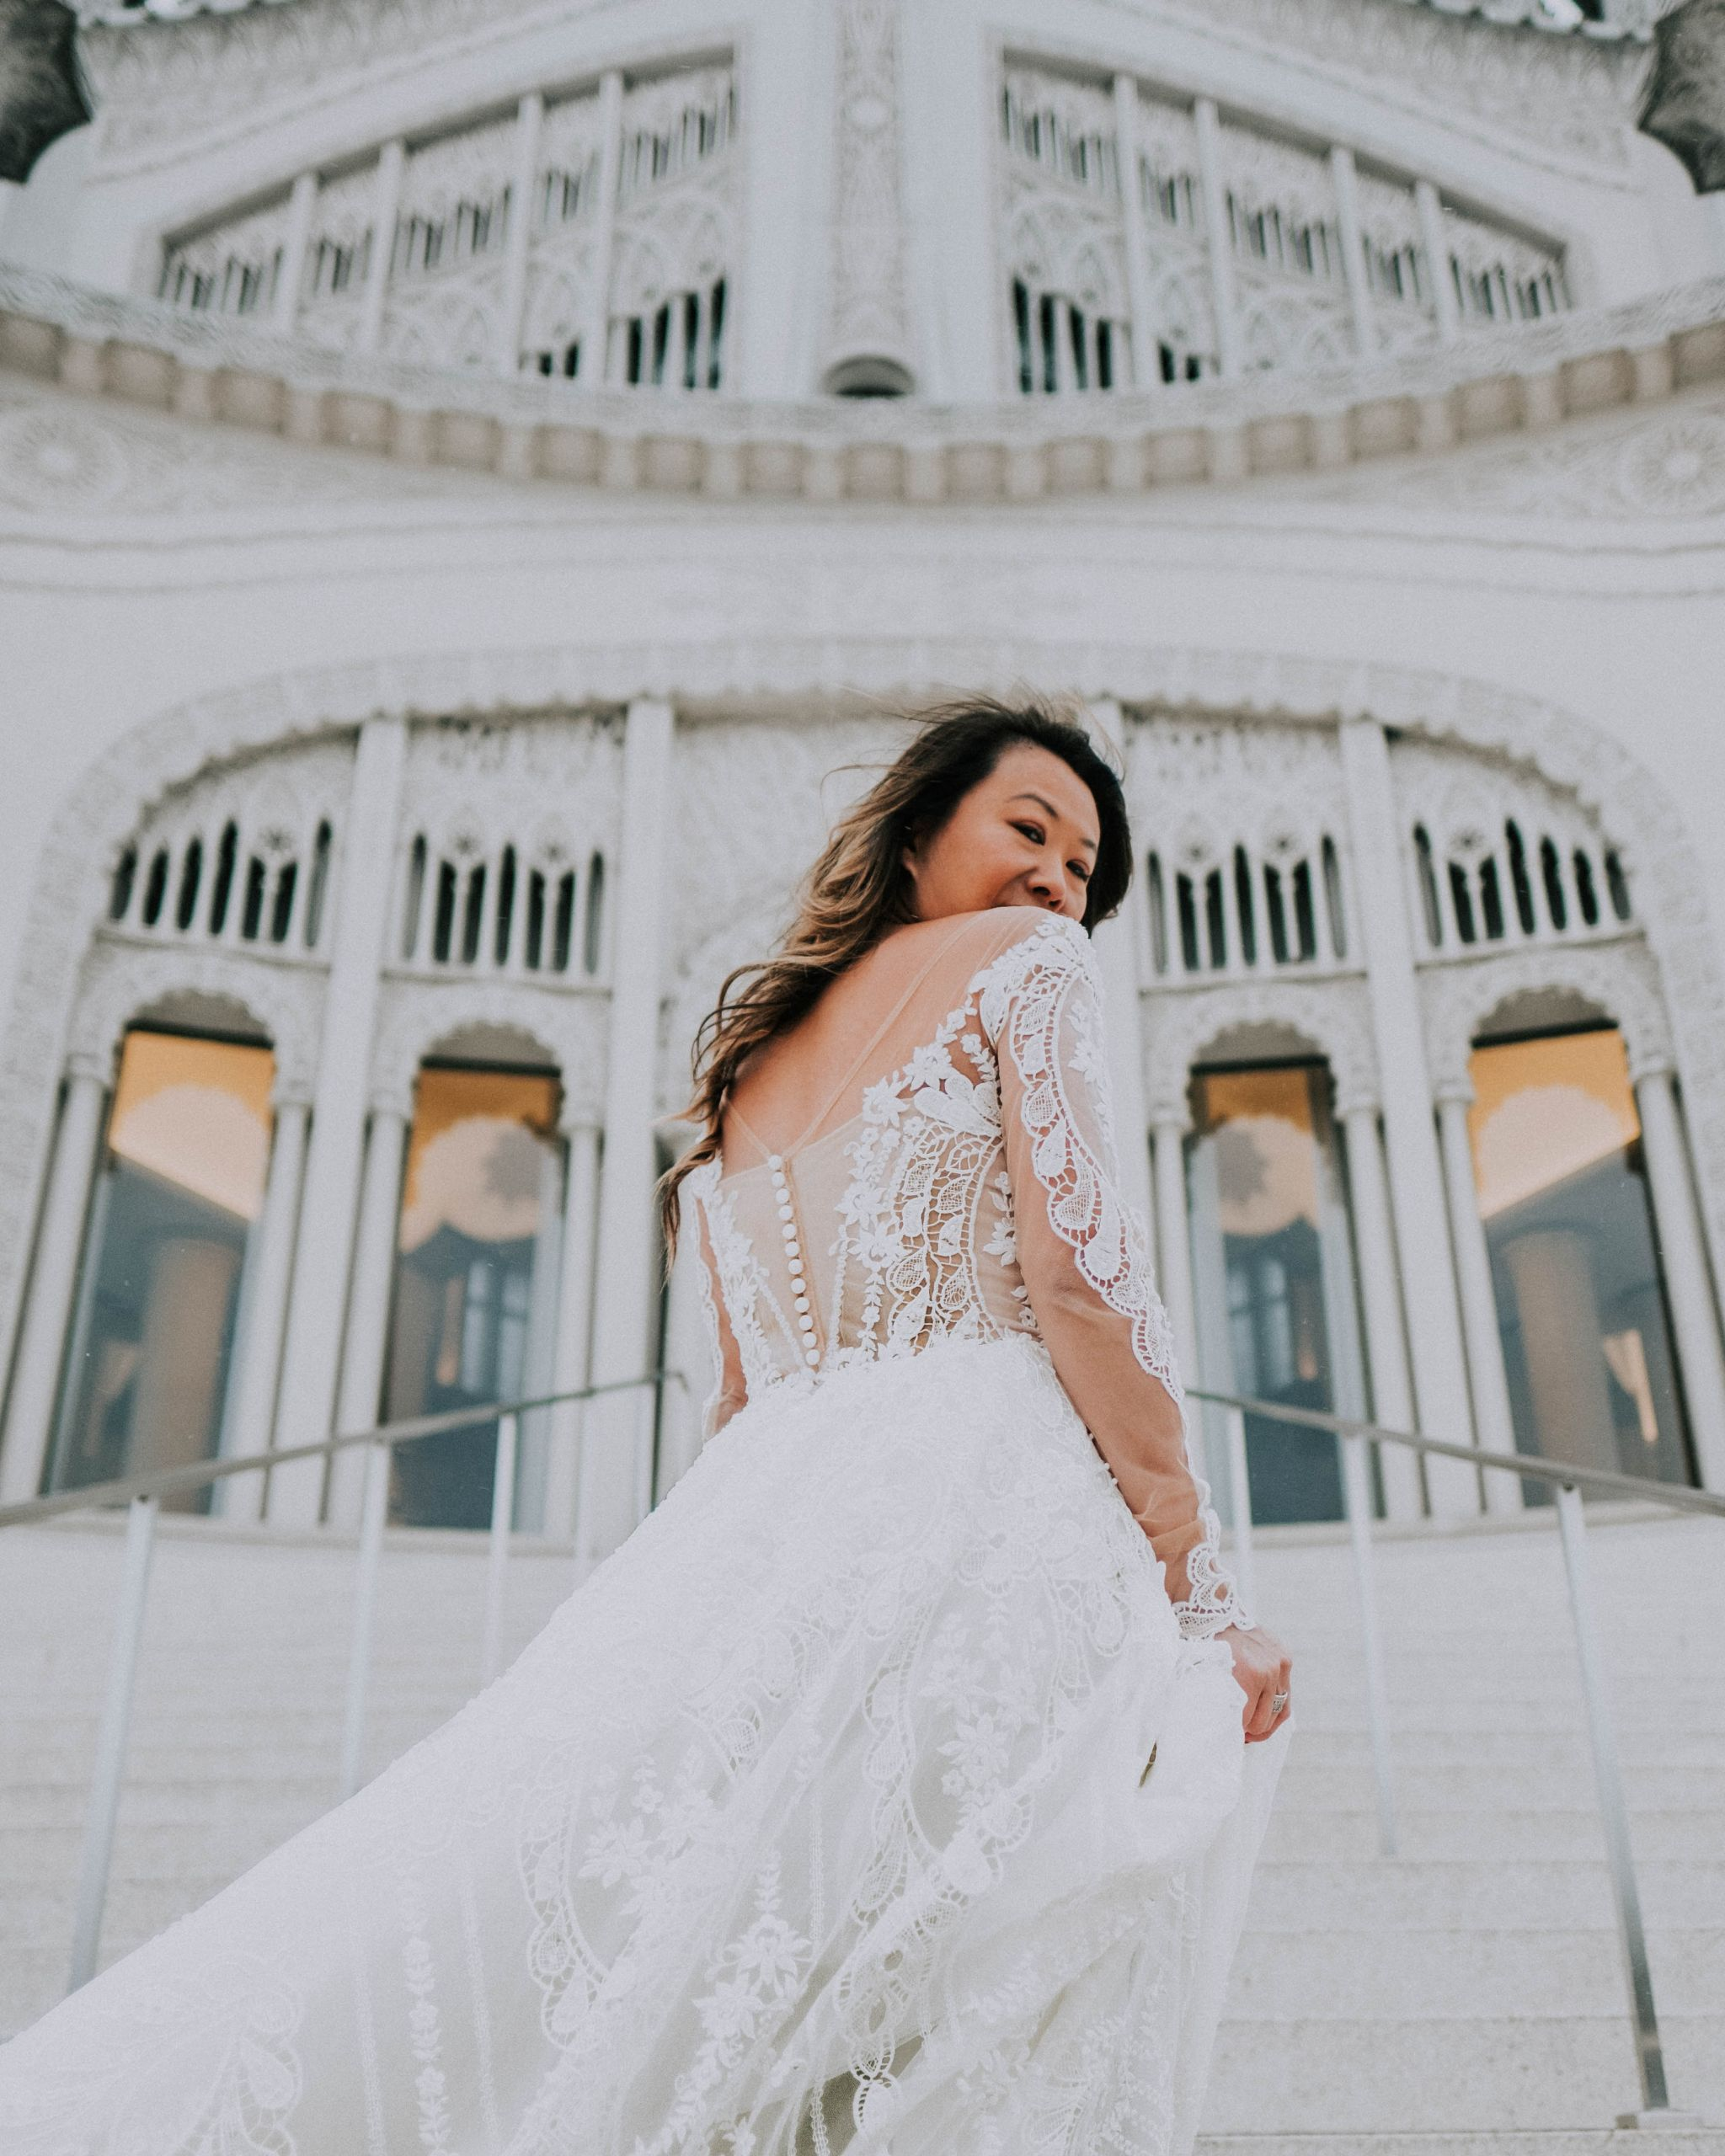 20 Things Every Woman Should Do Before Marriage, before marriage advice, single woman advice, a bucket list before marriage, Jennifer Worman, Red Soles and Red Wine, wedding dress, lace wedding dress